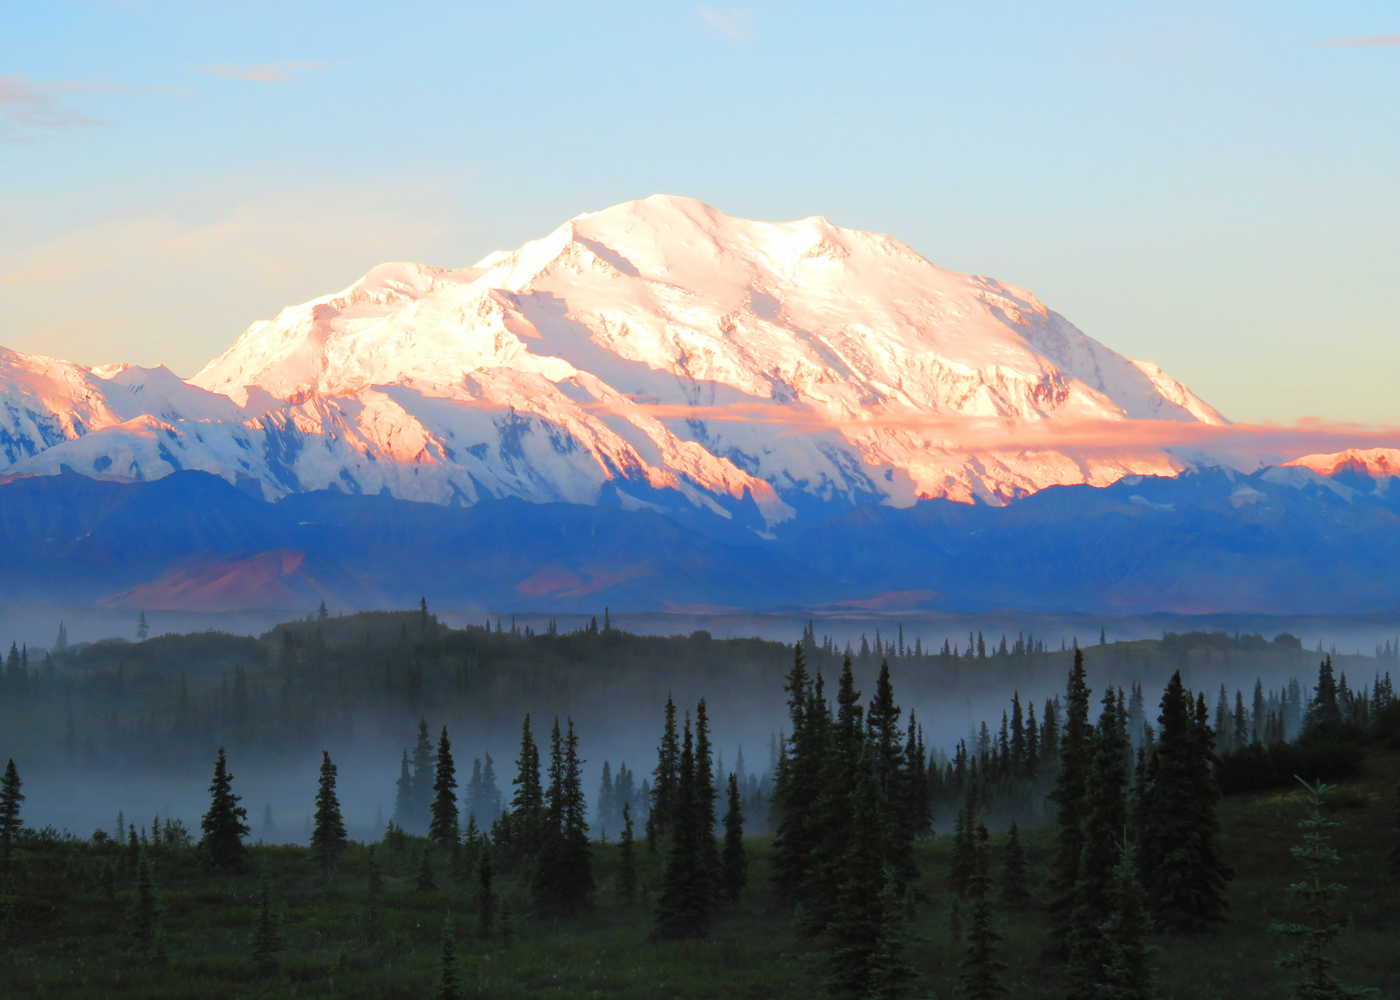 denali national park mature women dating site Denali park village:  popular denali national park and preserve categories  we had 2 small beds and a couch for 1 older woman and 2 adult women.